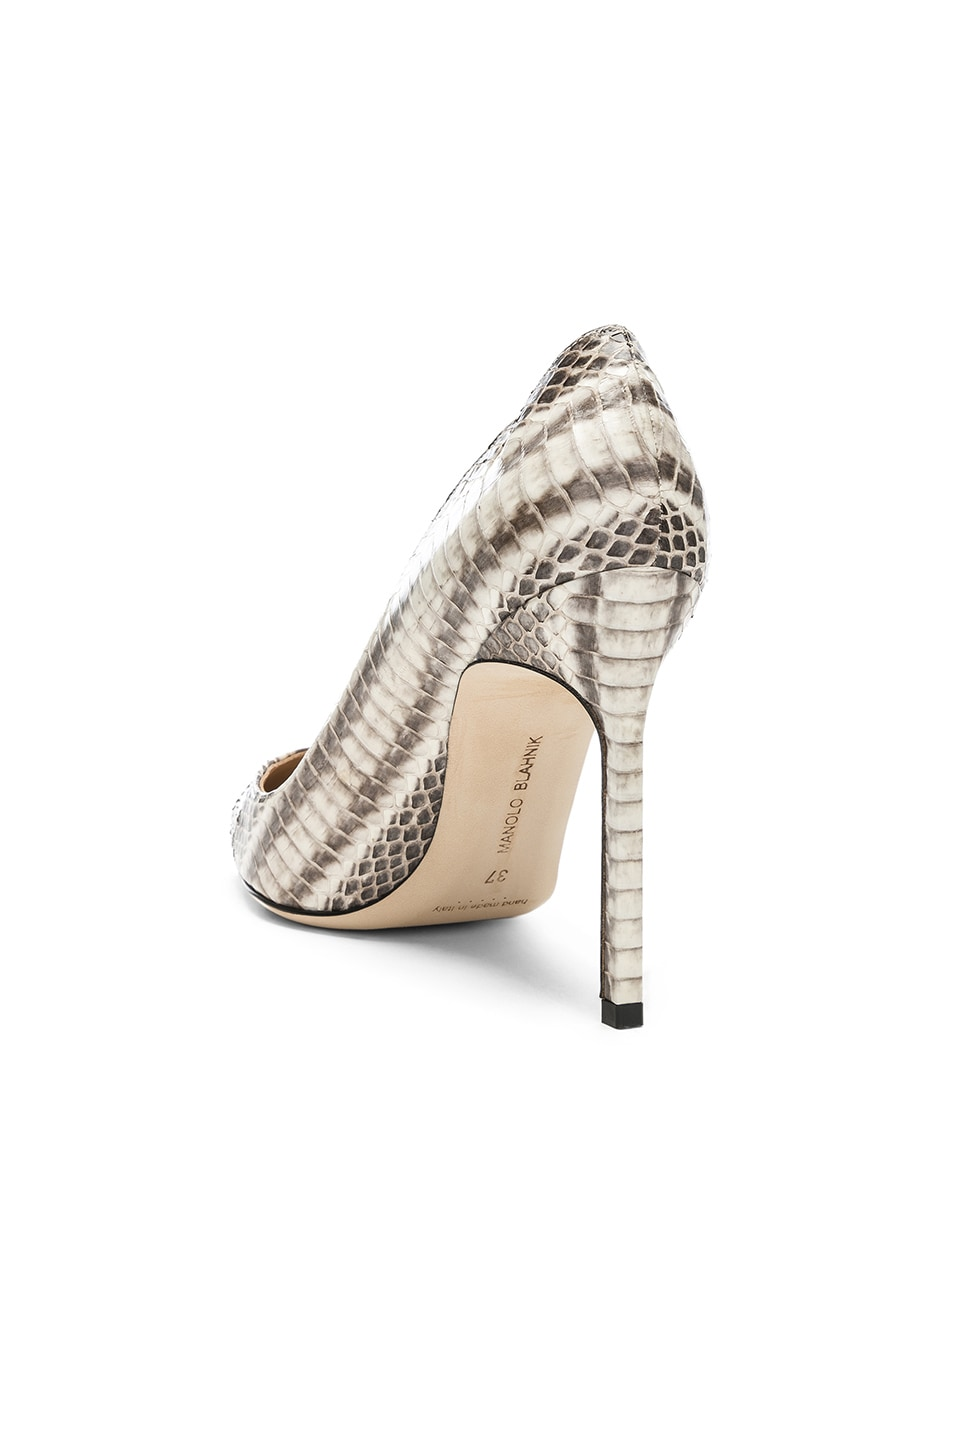 Image 3 of Manolo Blahnik BB Watersnake 105 Heel in Black & White